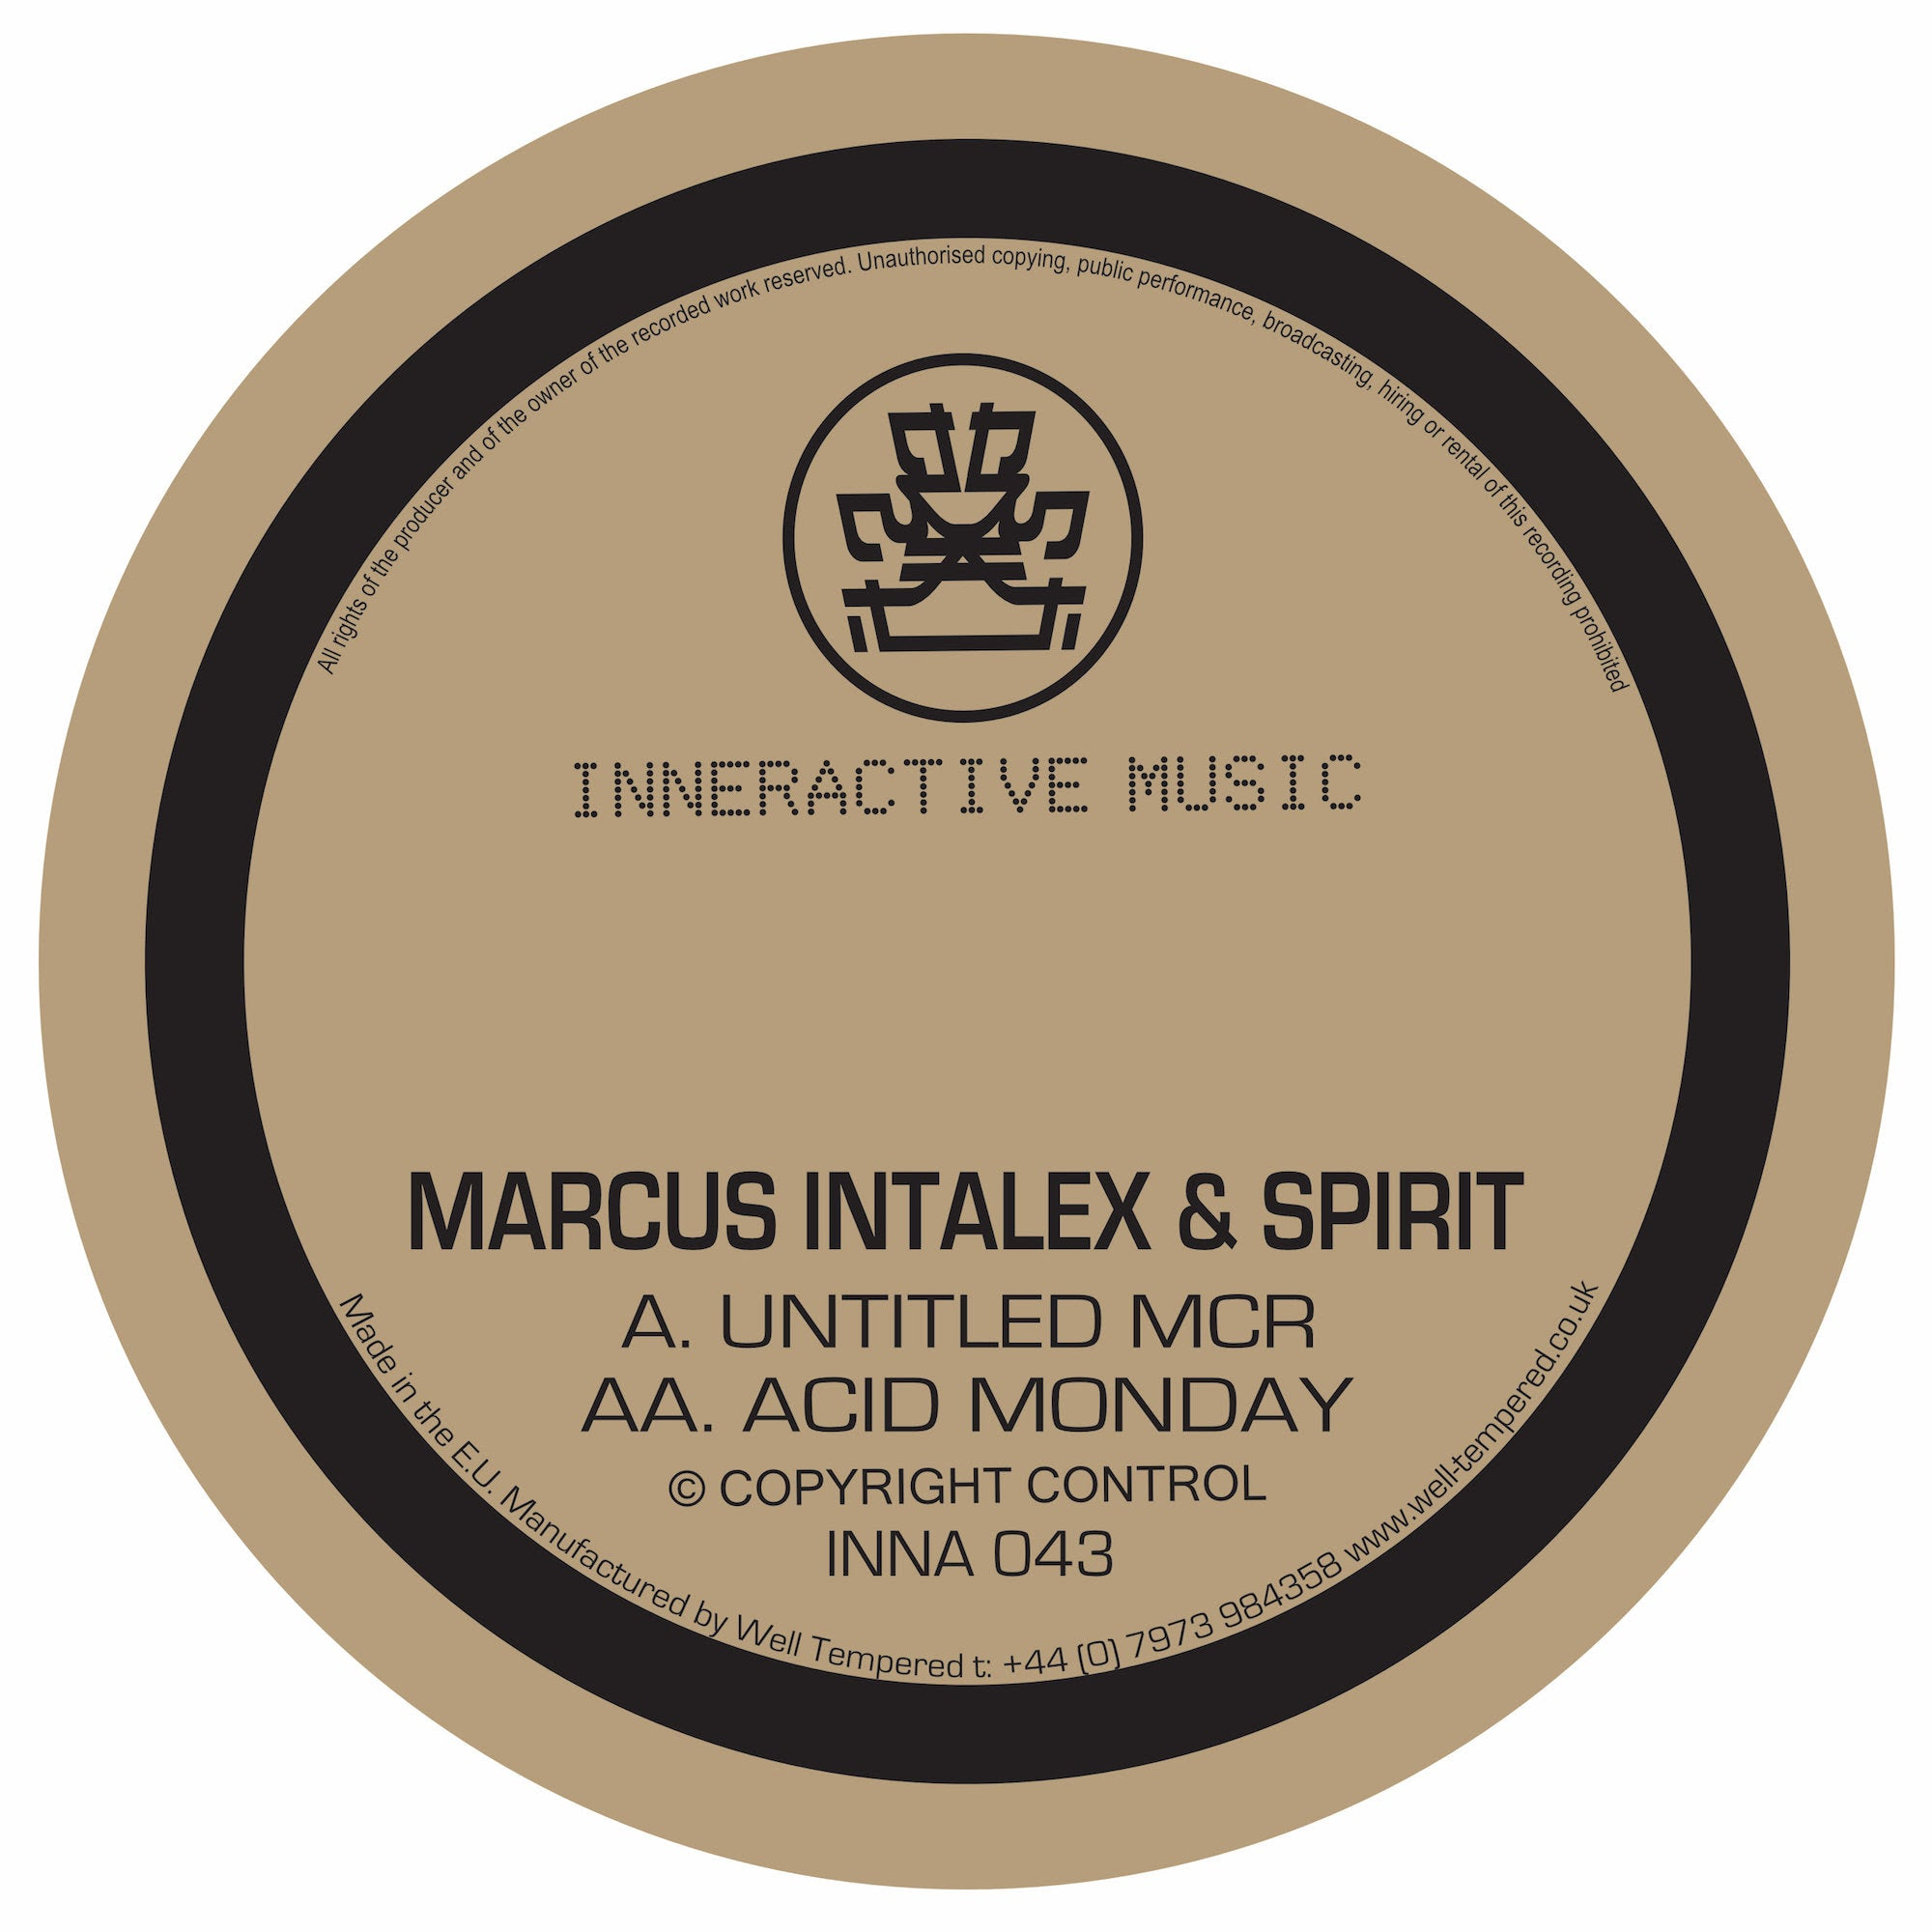 Marcus Intalex & Spirit - Untitled MCR / Acid Monday